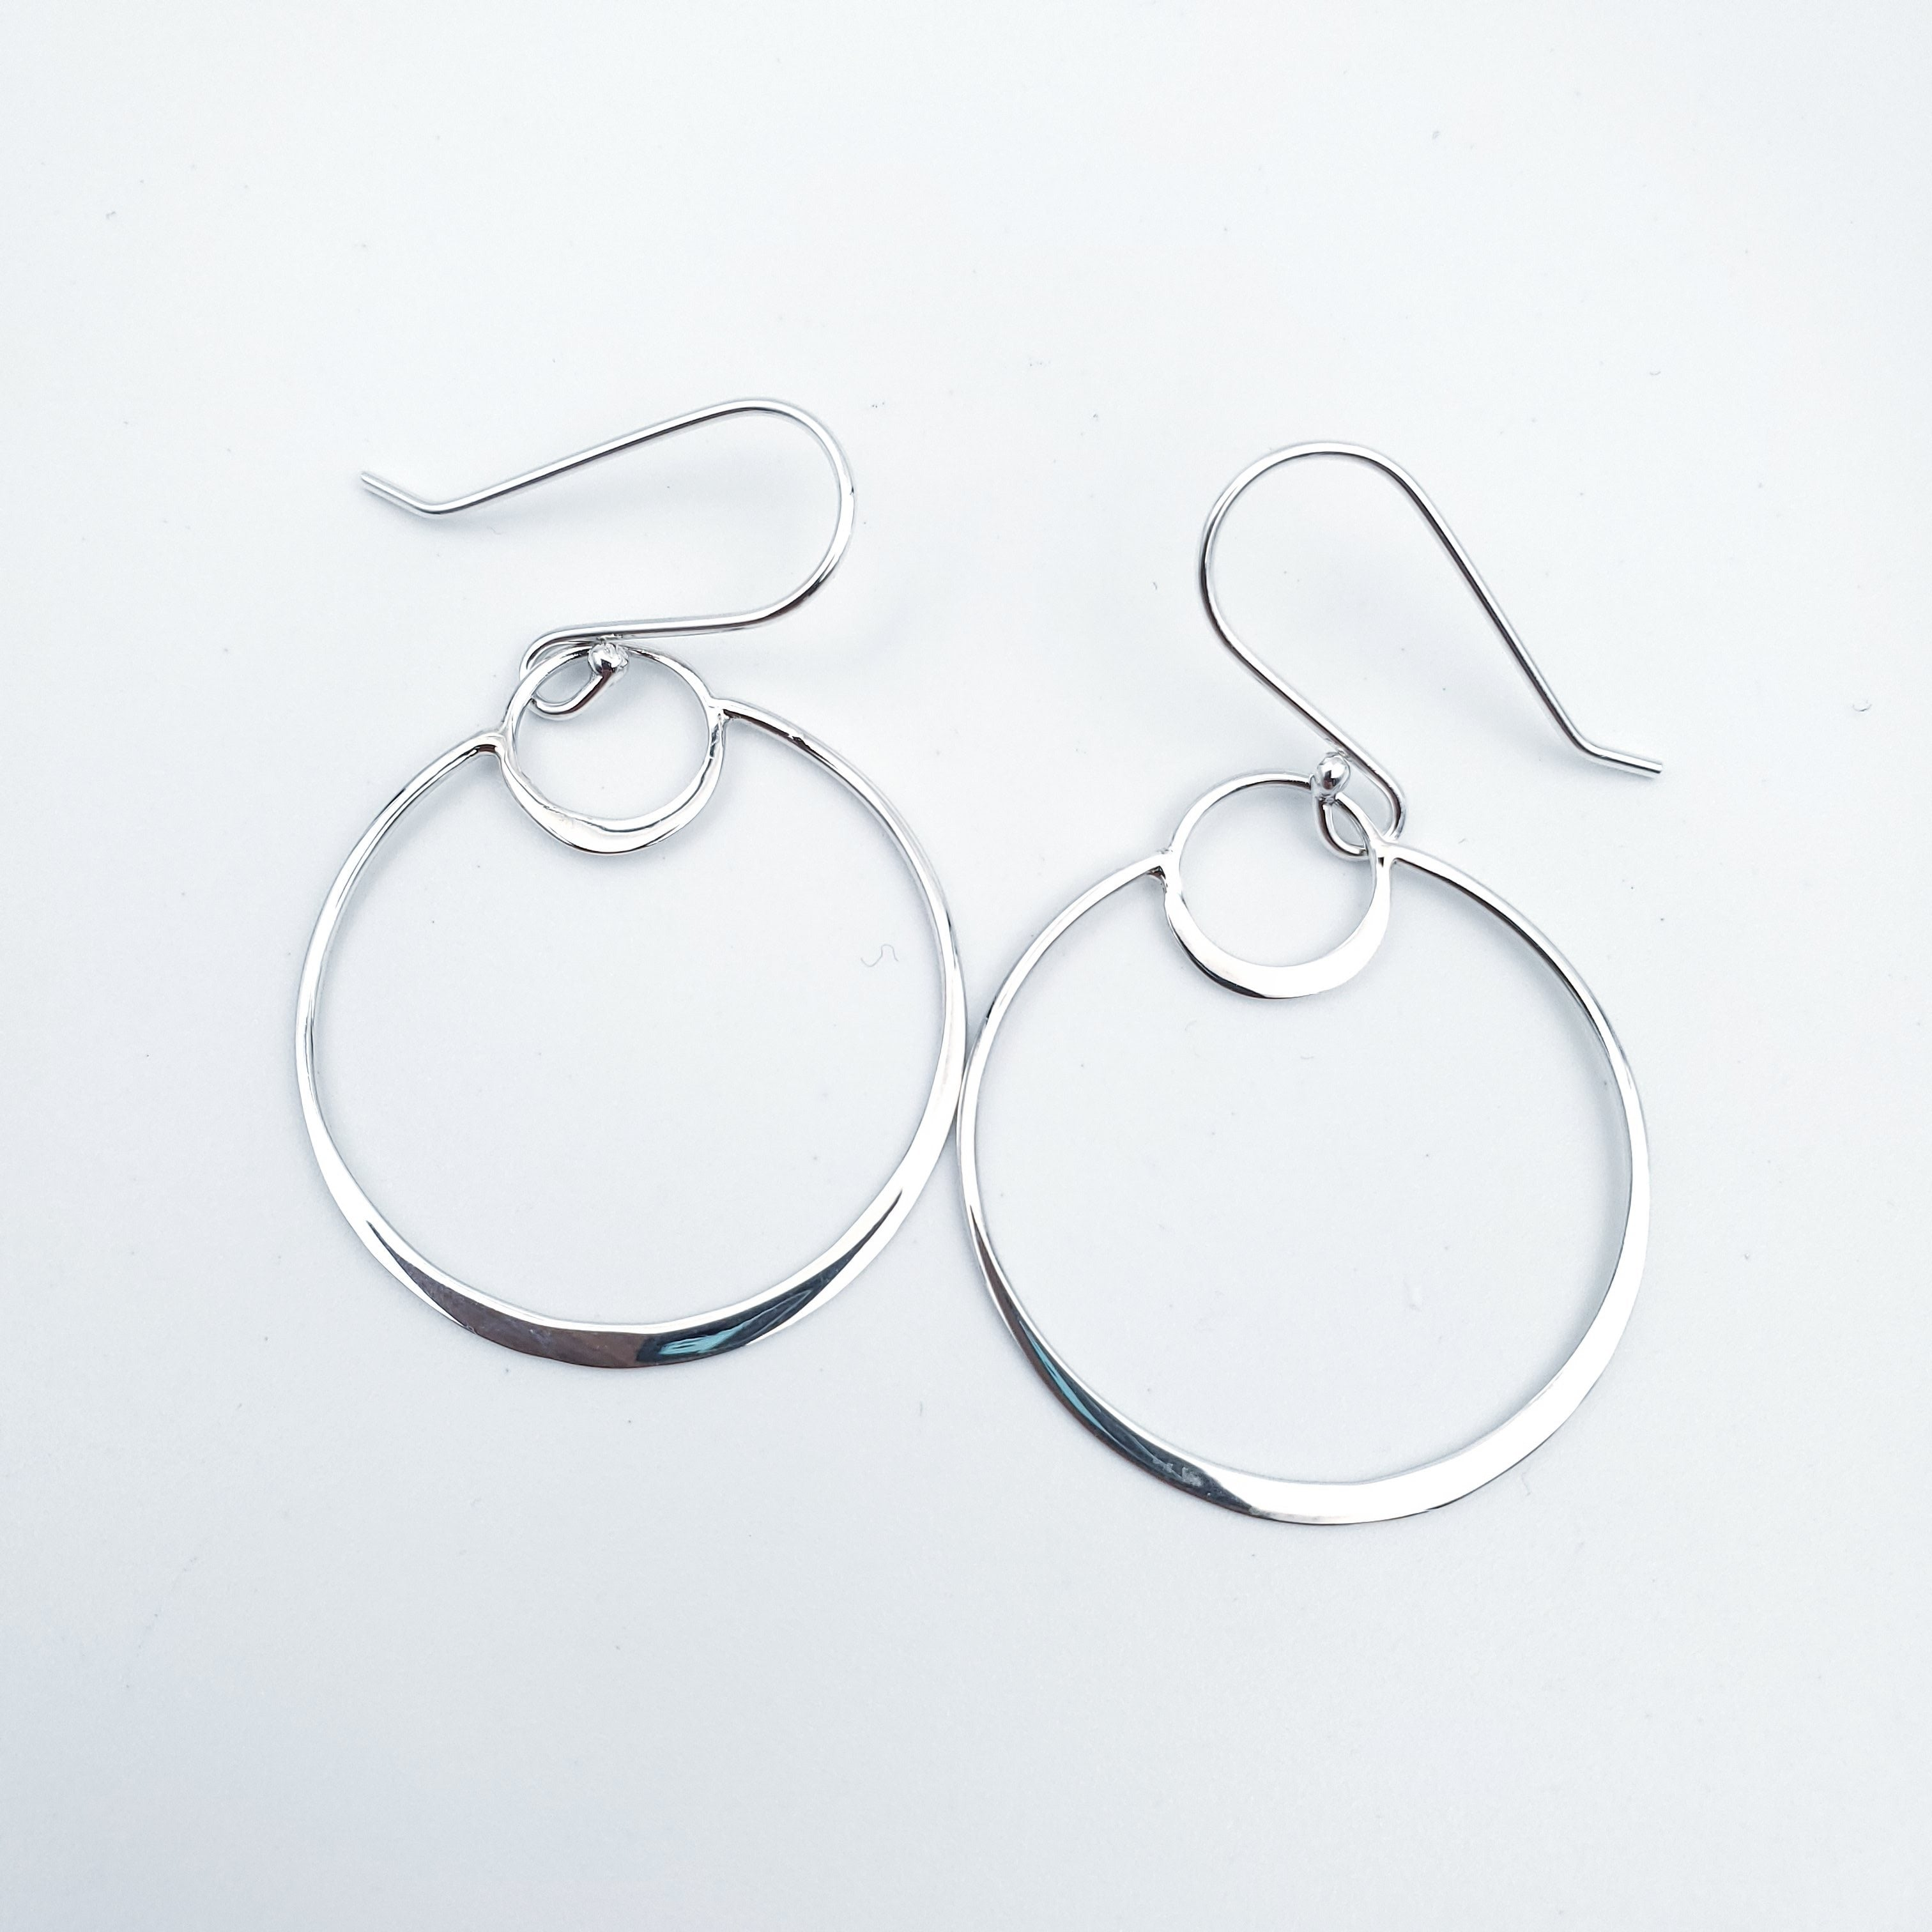 Small silver circle inside larger silver silver eclipse silver earrings